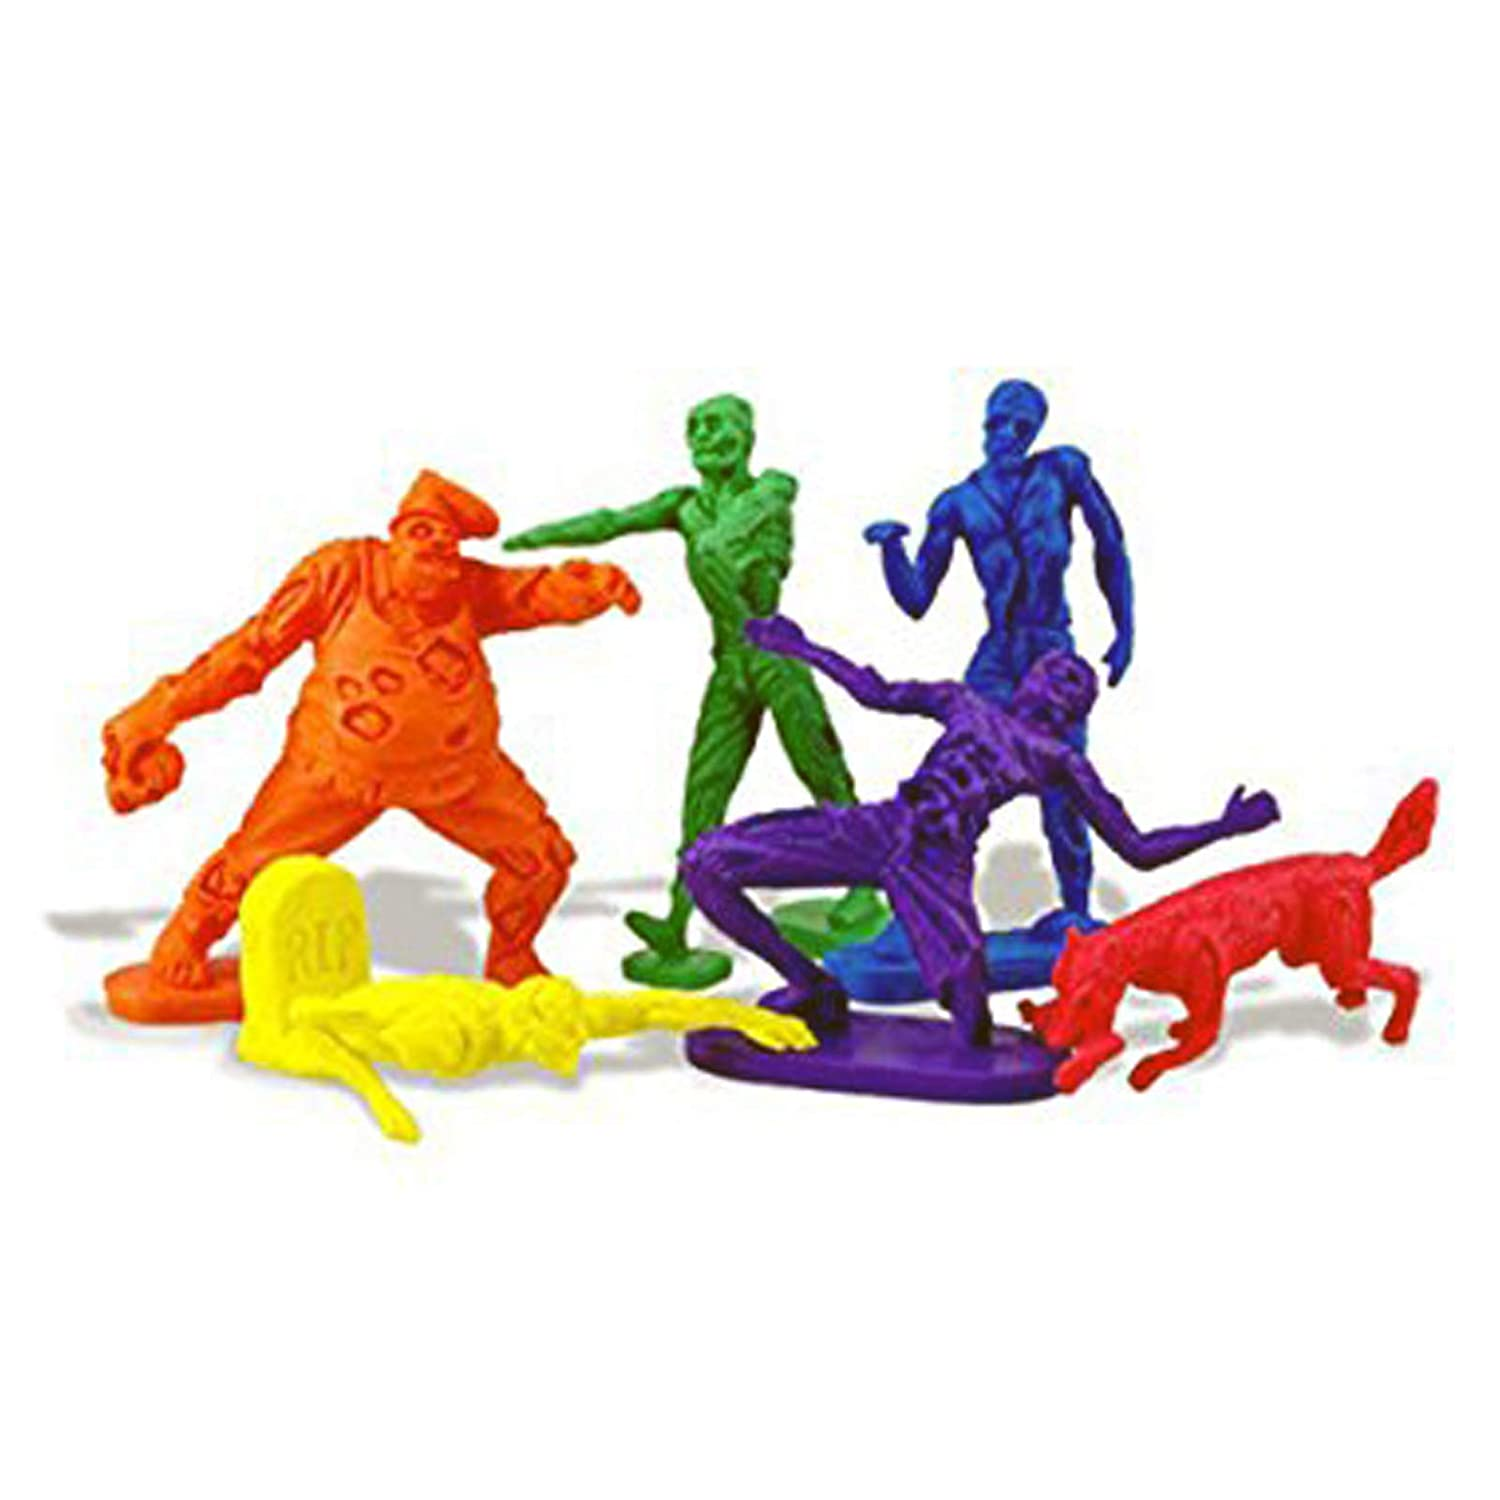 Colorful Horror Zombie Erasers - Set of 5 - by NUOP Design